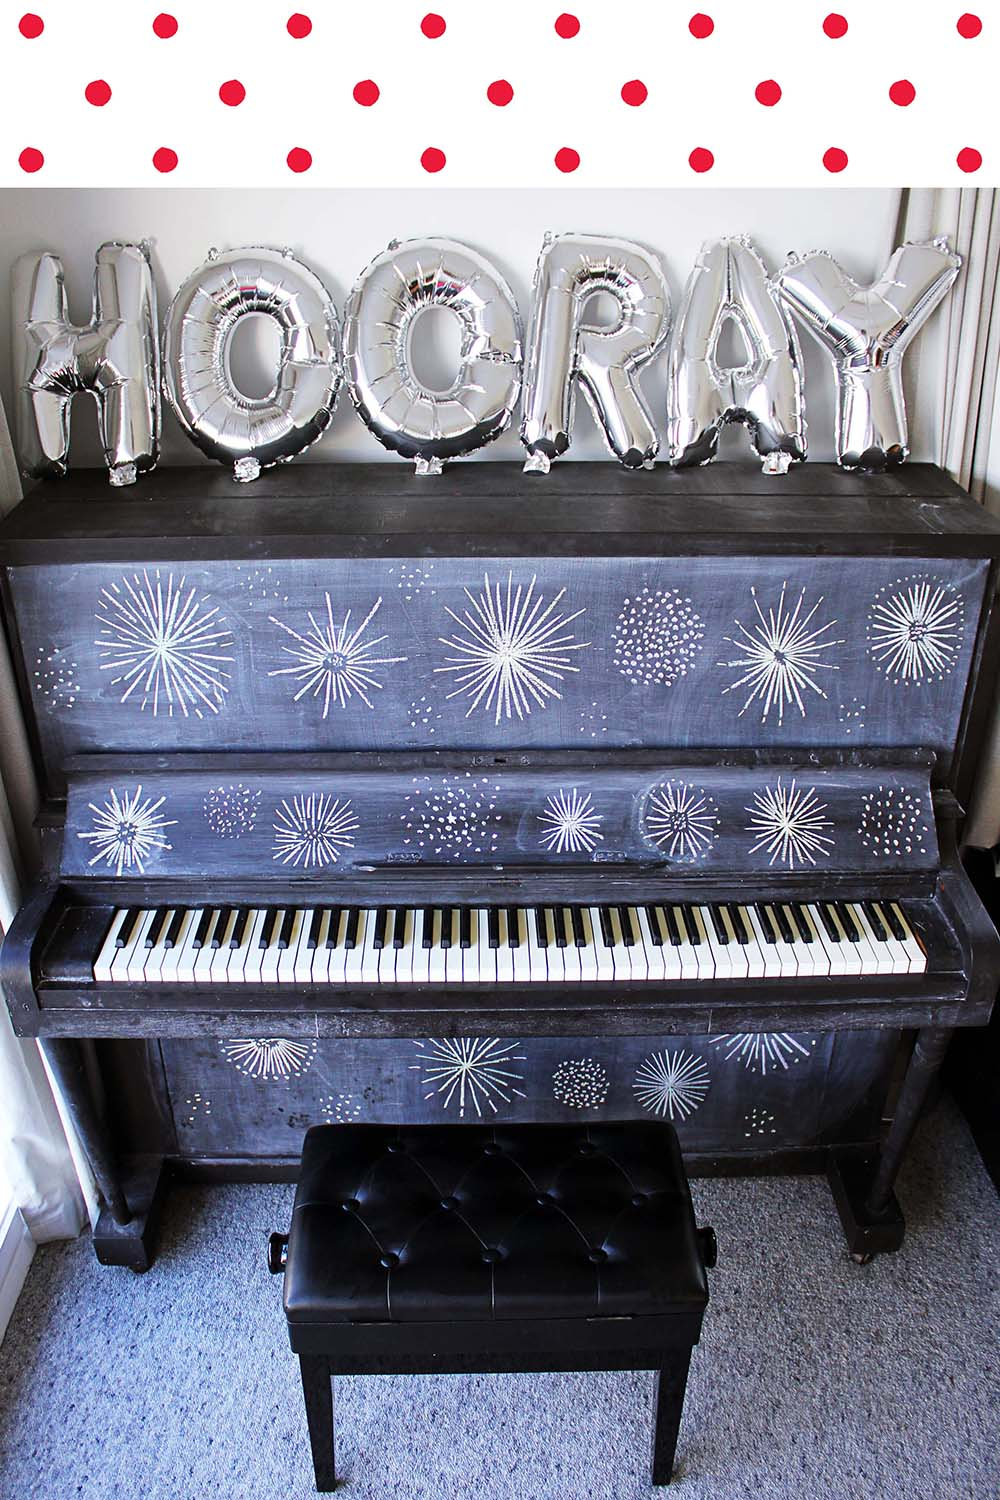 Chalkboard Painted Piano